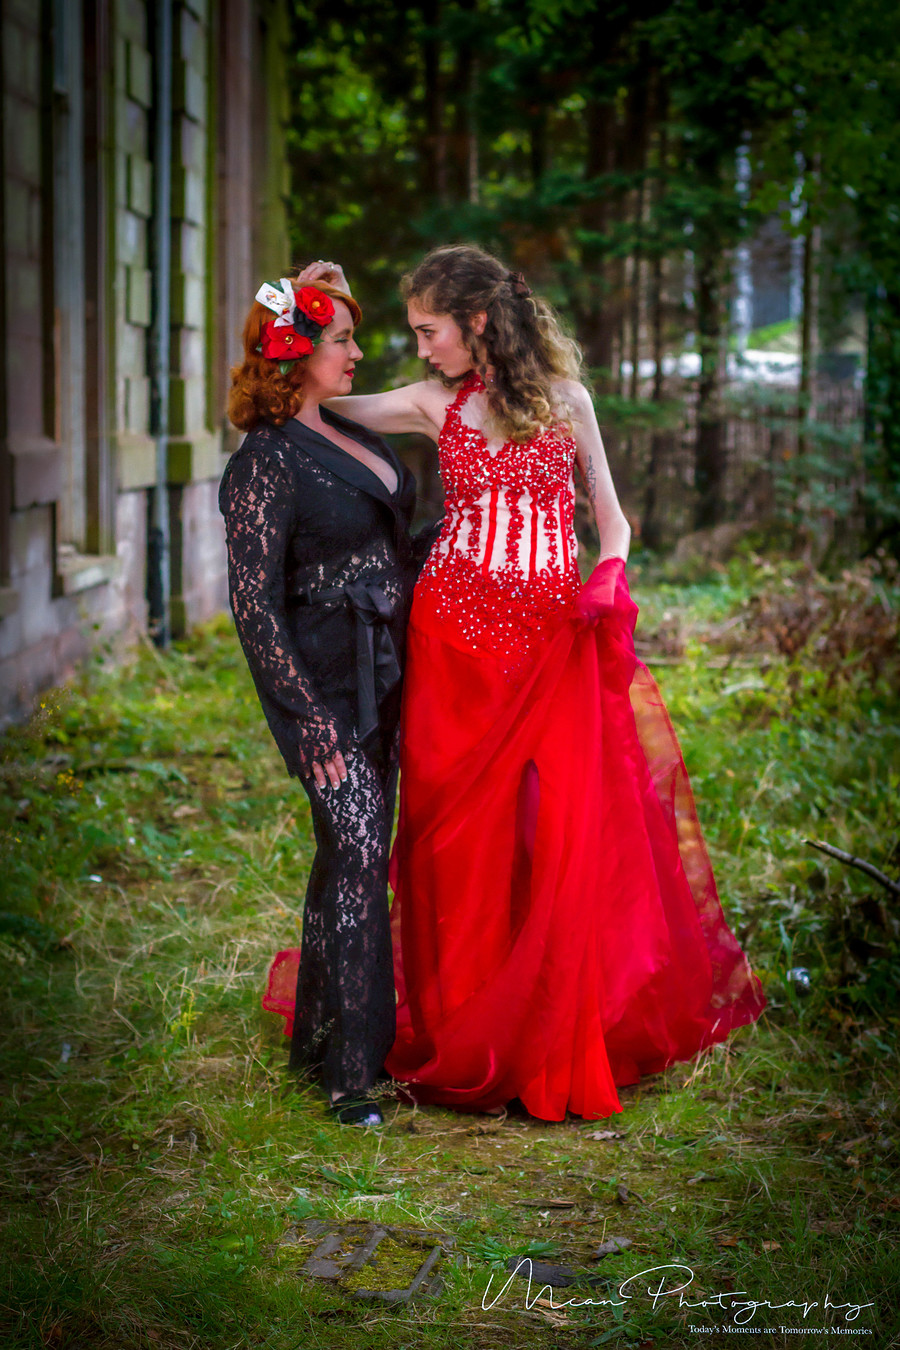 Come to me / Photography by Mcan Photography Ltd (Ste), Models Cat Mida Lee, Models Miss Tiger Rose, Makeup by Amy Mason / Uploaded 4th September 2018 @ 10:13 PM